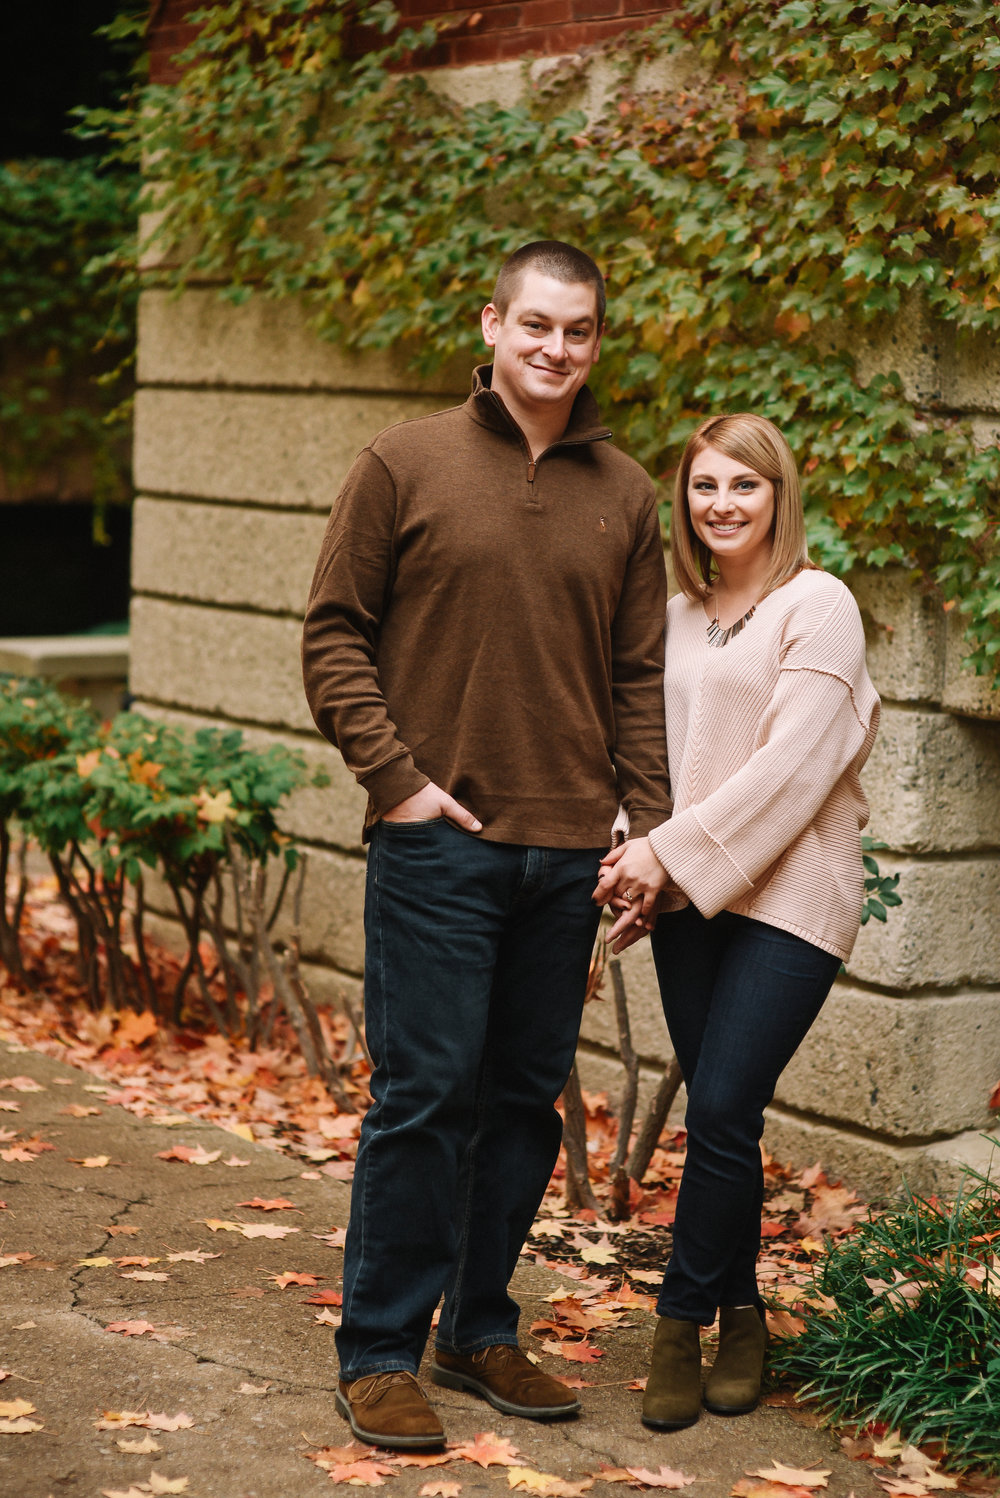 Law_Quad_Ann_Arbor_Engagement_Photos-11.jpg